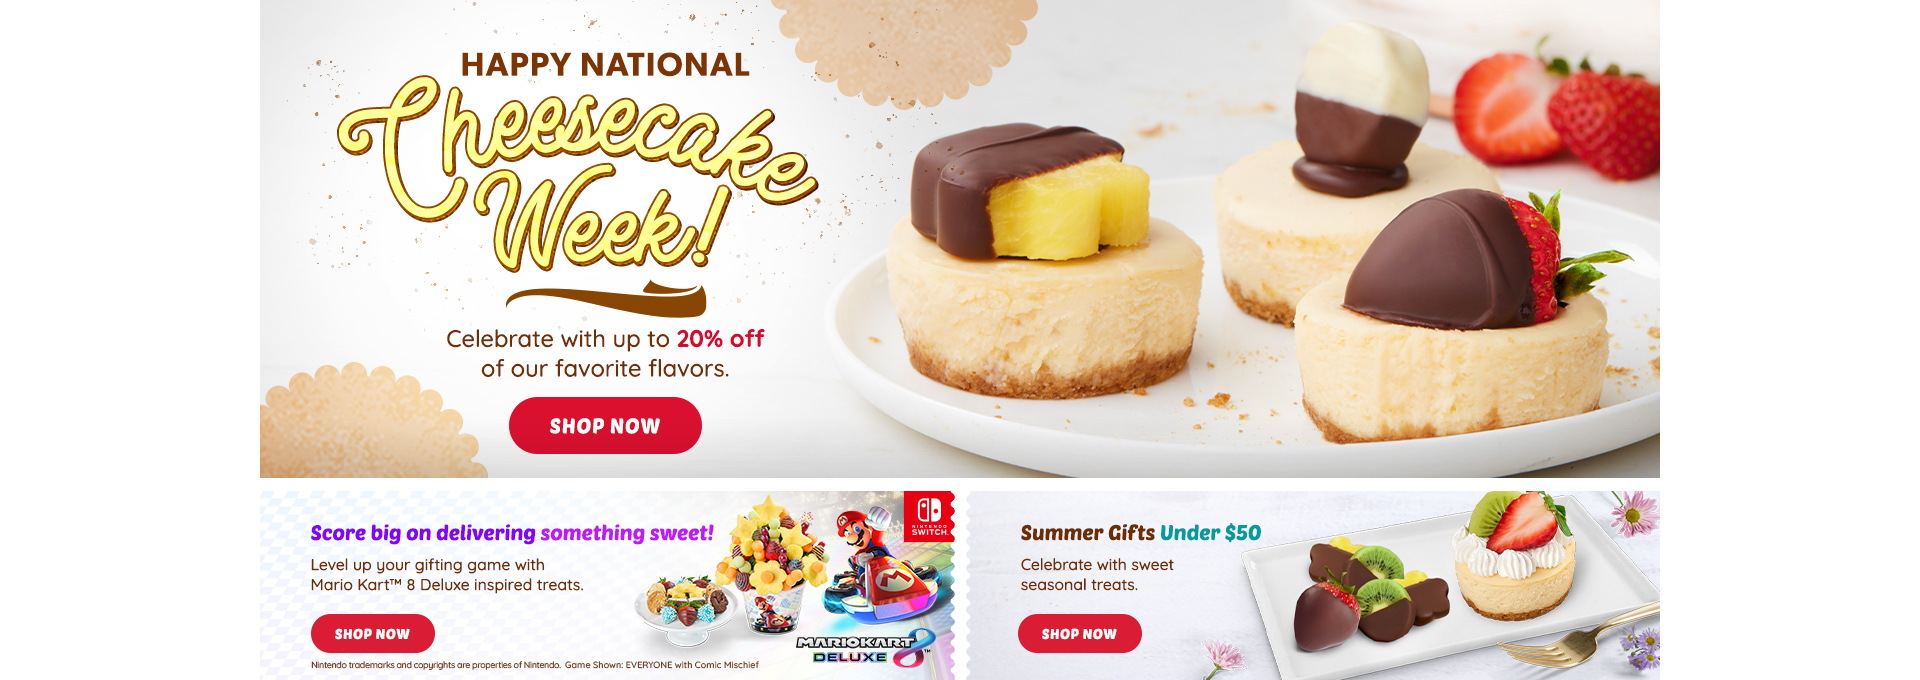 HP DT Cheesecake Gifts, Nintendo Gifts, Under $50